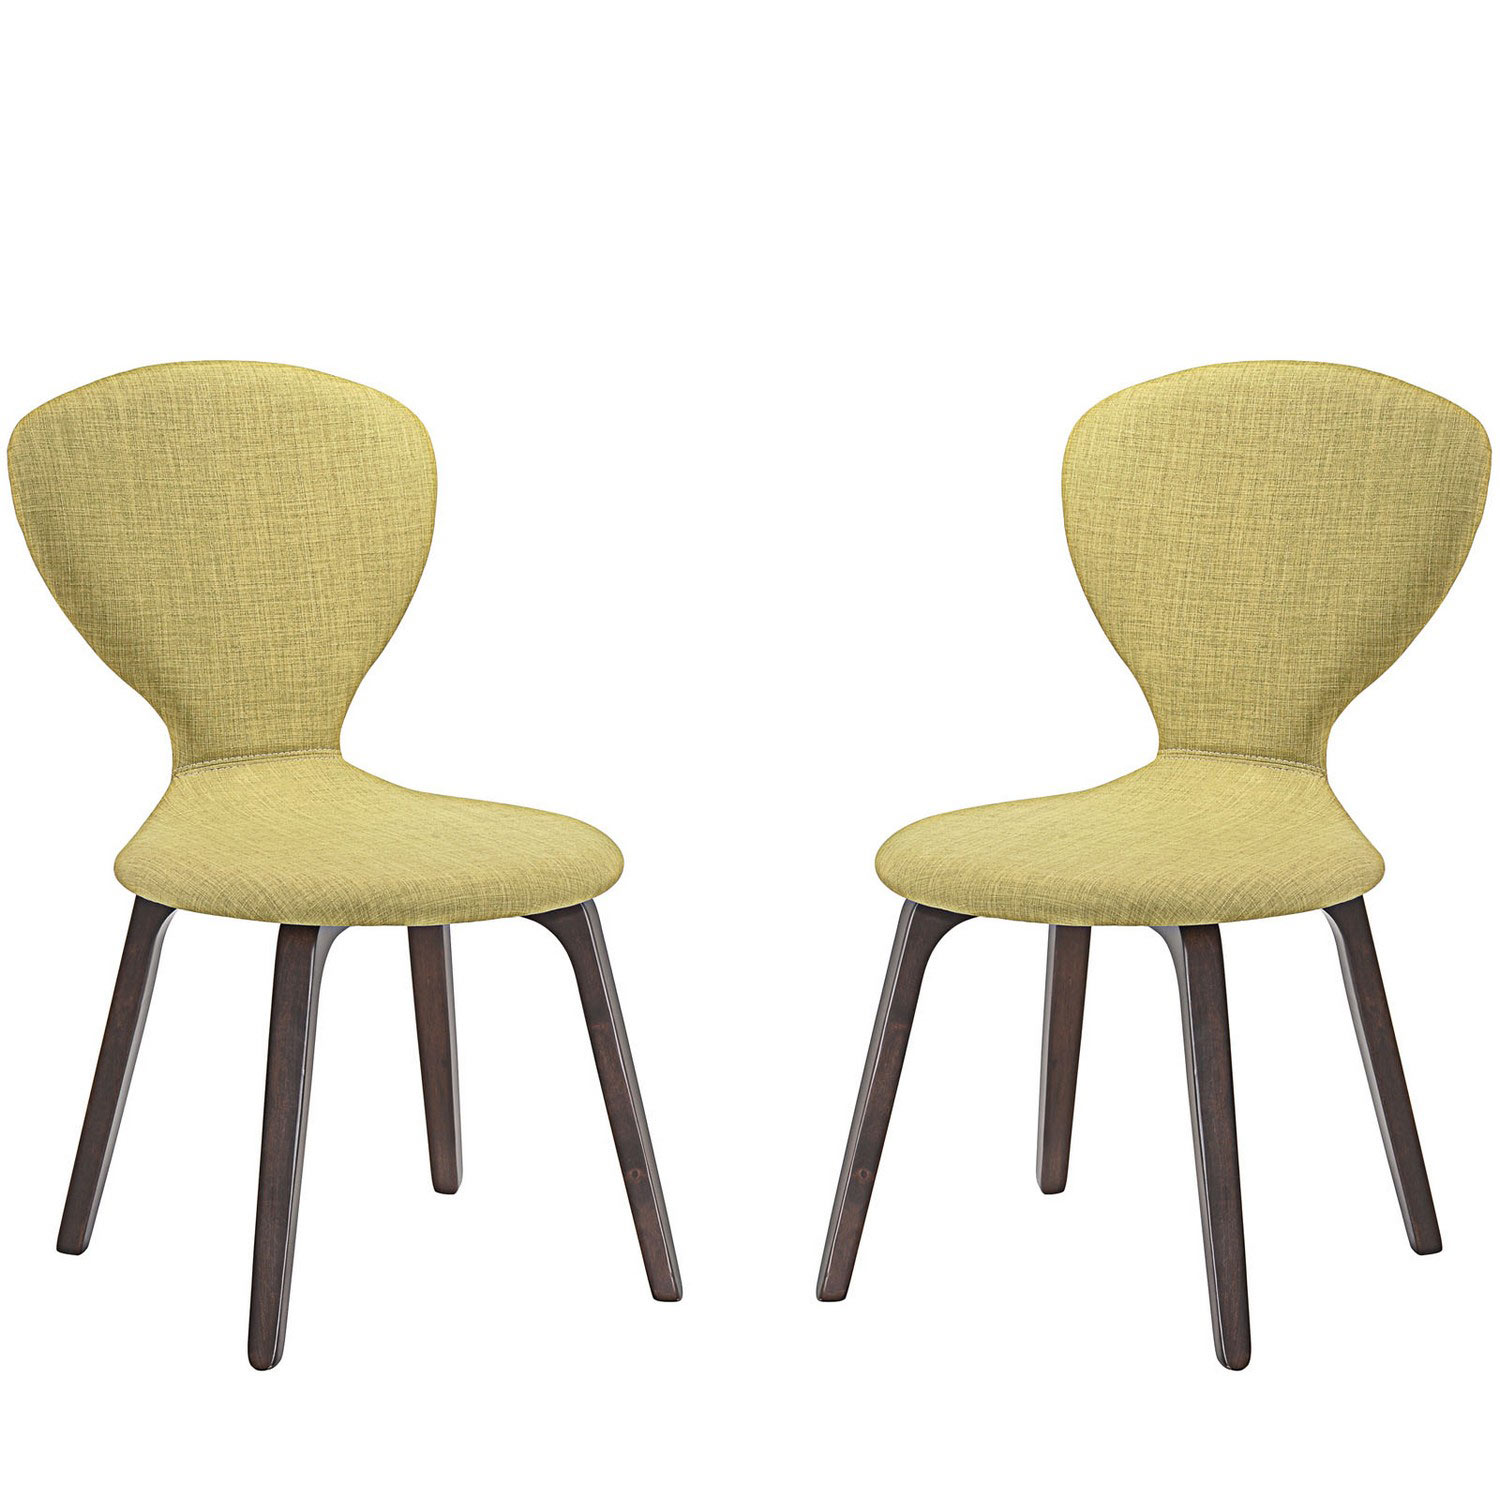 Modway Tempest Dining Side Chair Set of 2 - Walnut Green